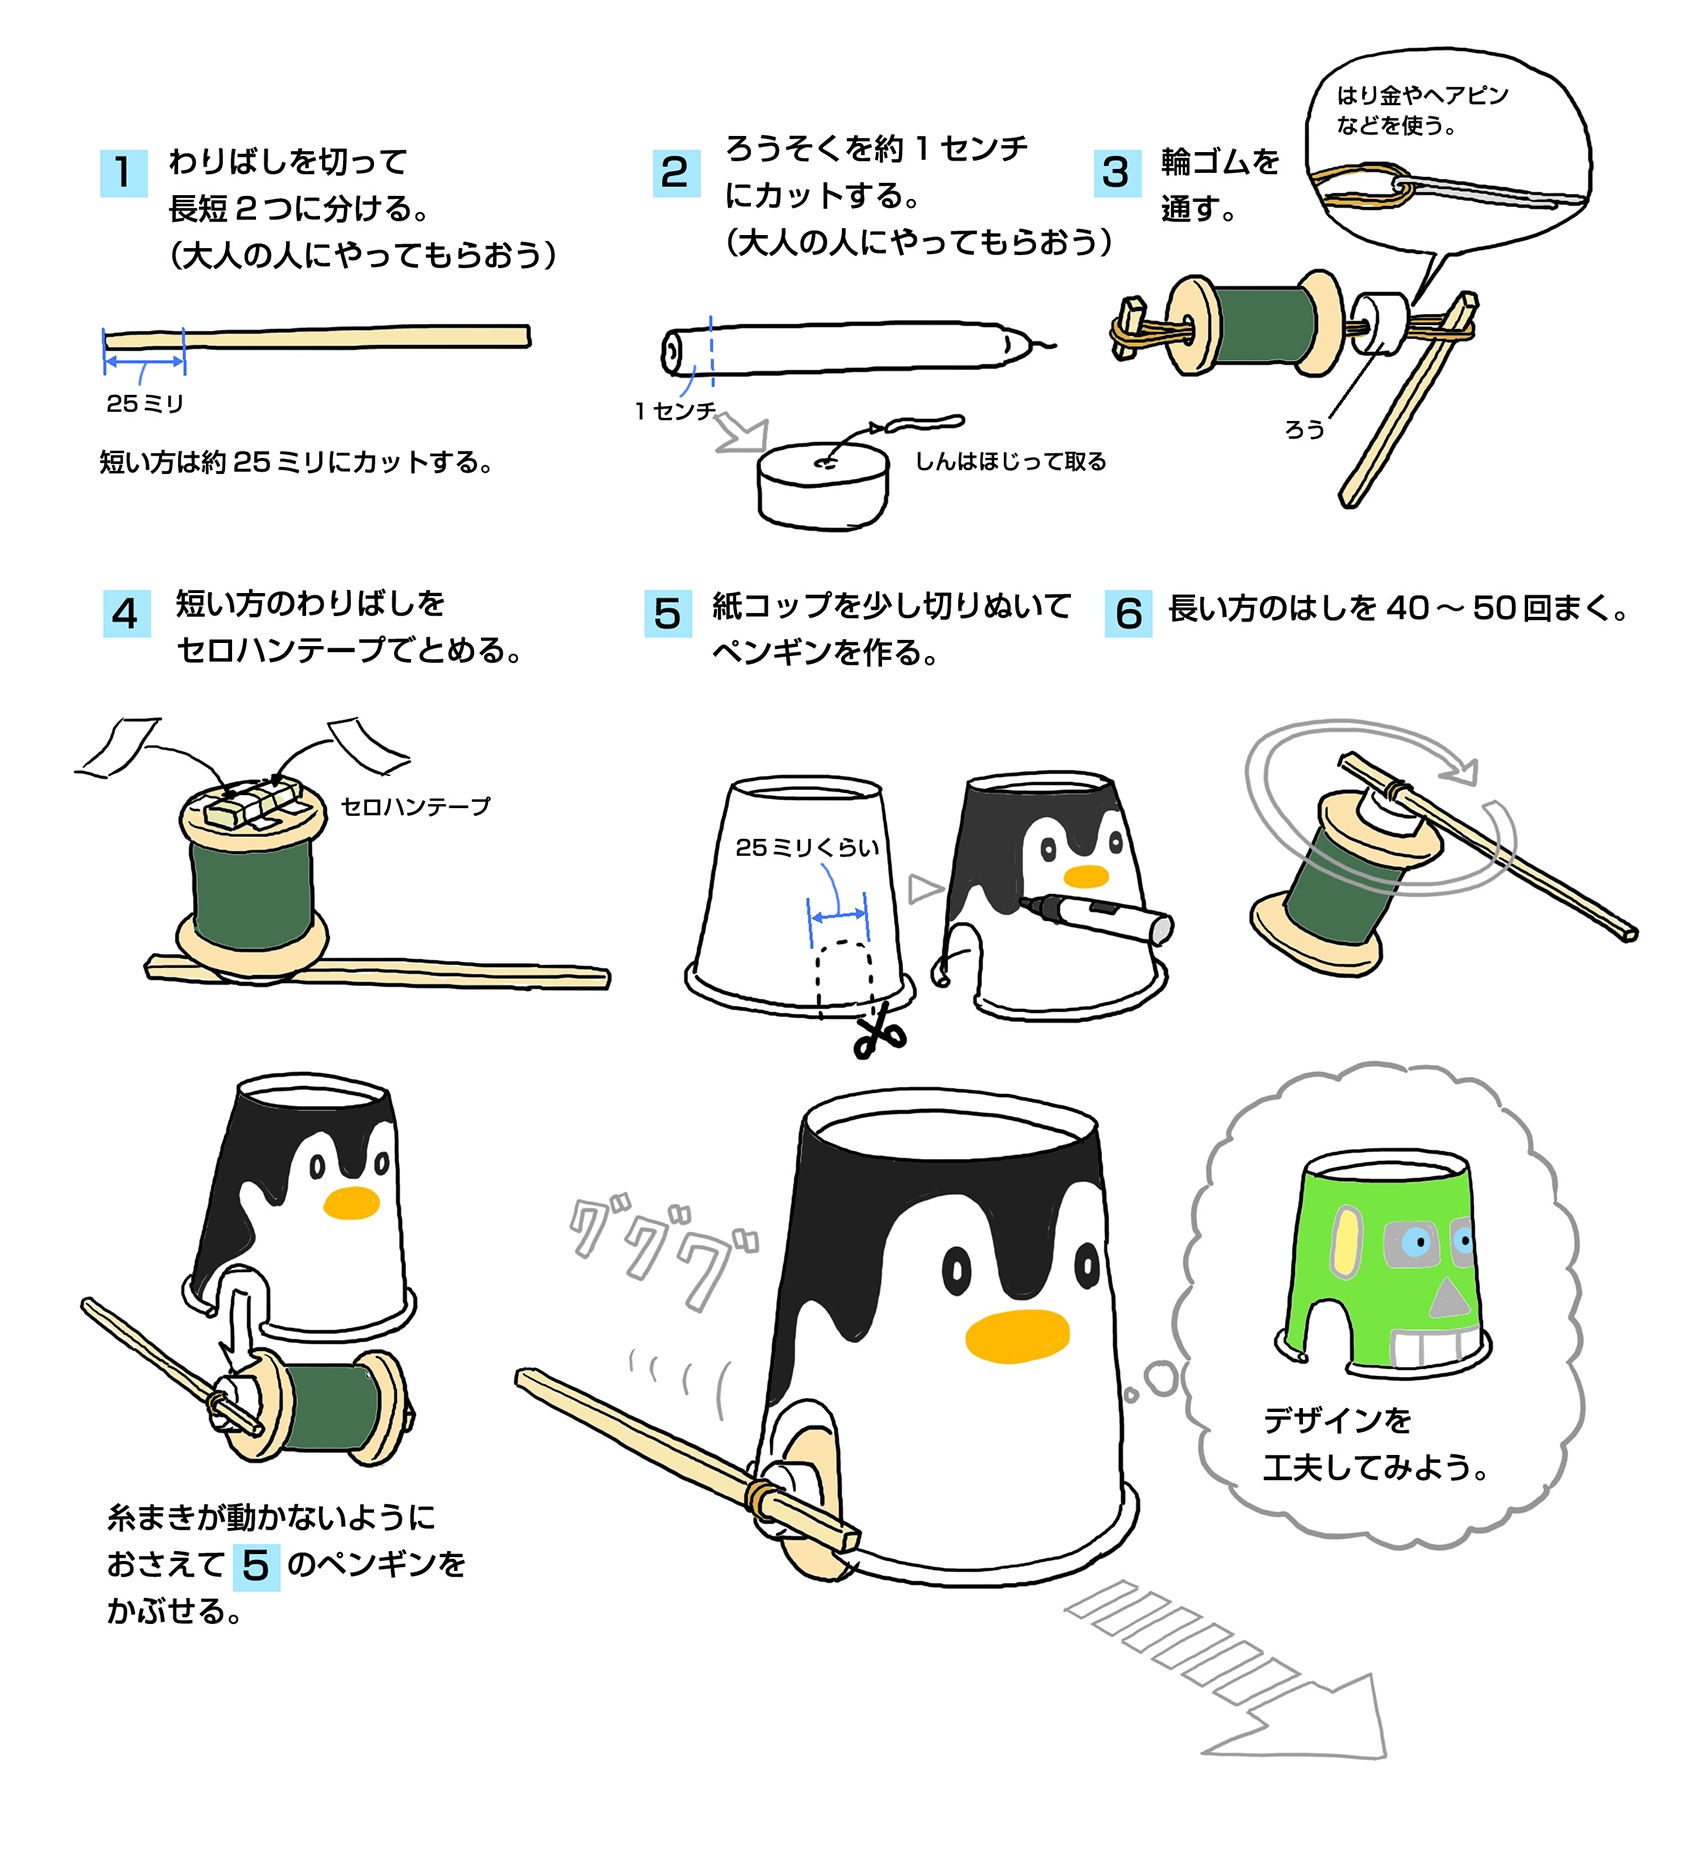 https://kids.gakken.co.jp/jiyuu/wp-content/uploads/2018/05/rubber_power_penguin_img01.jpg